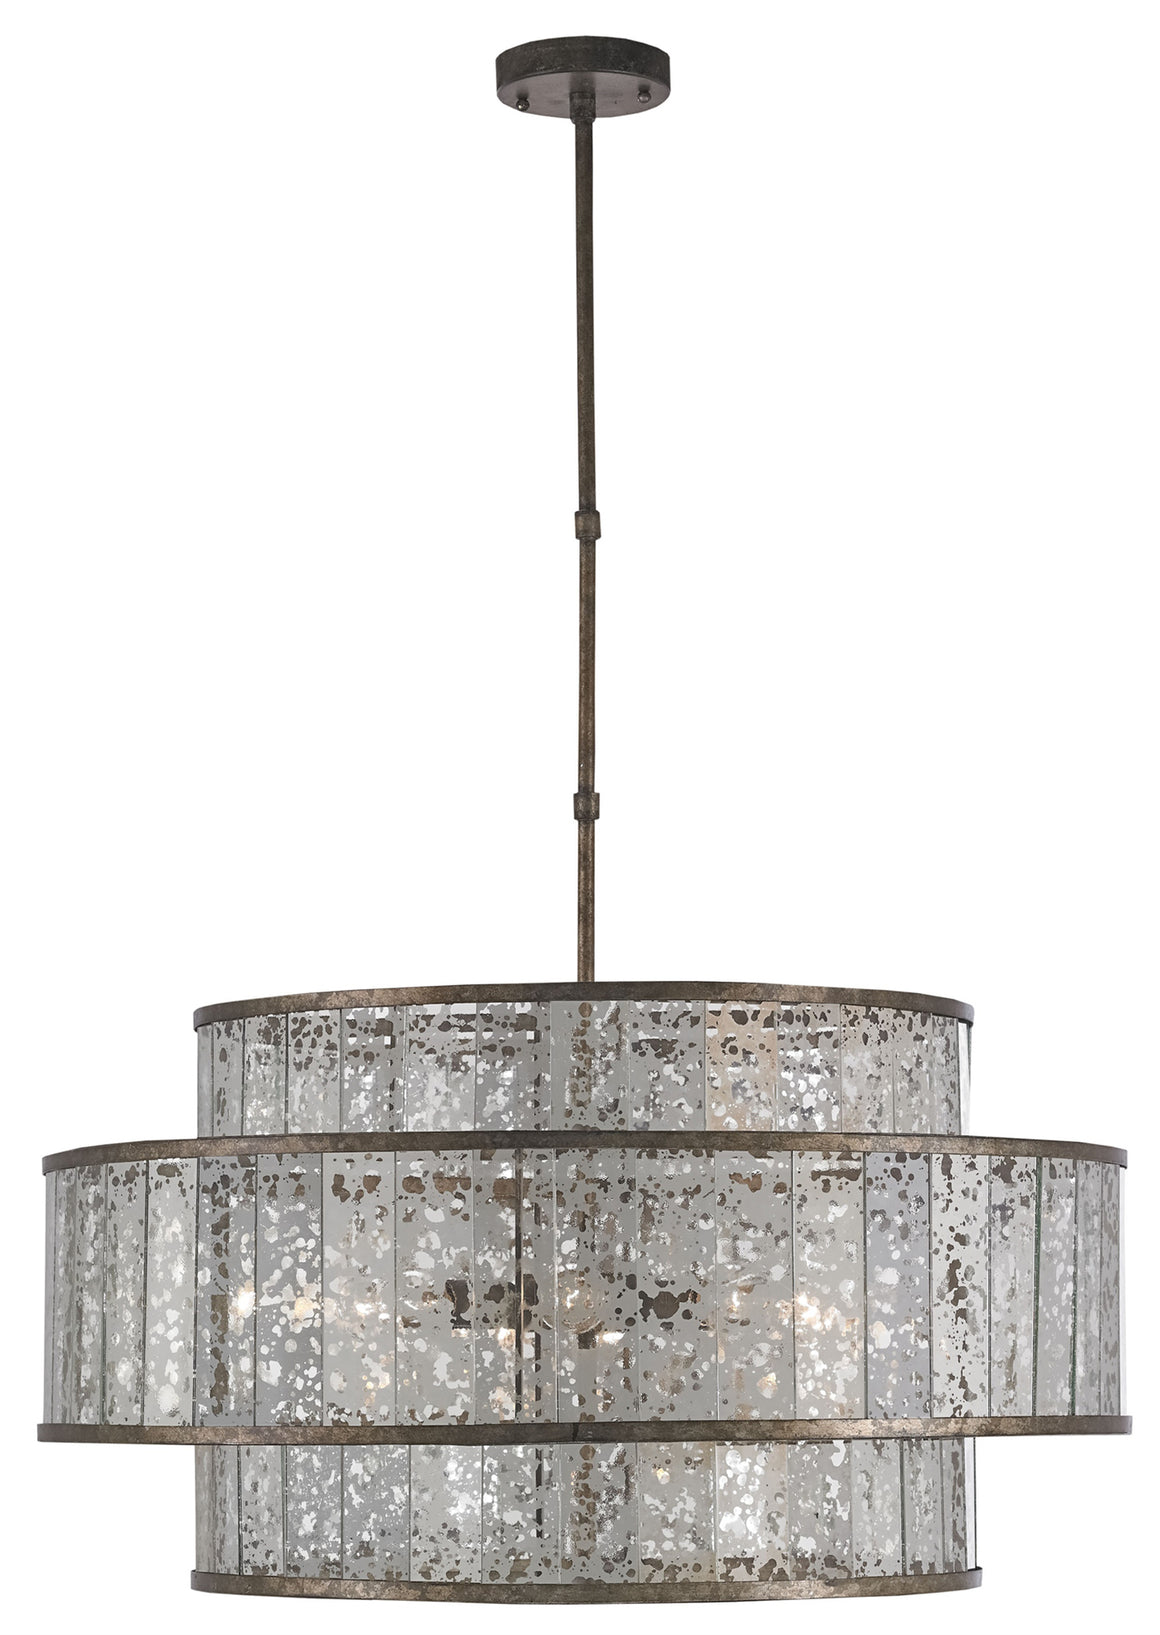 Currey and Company Fantine Large Chandelier